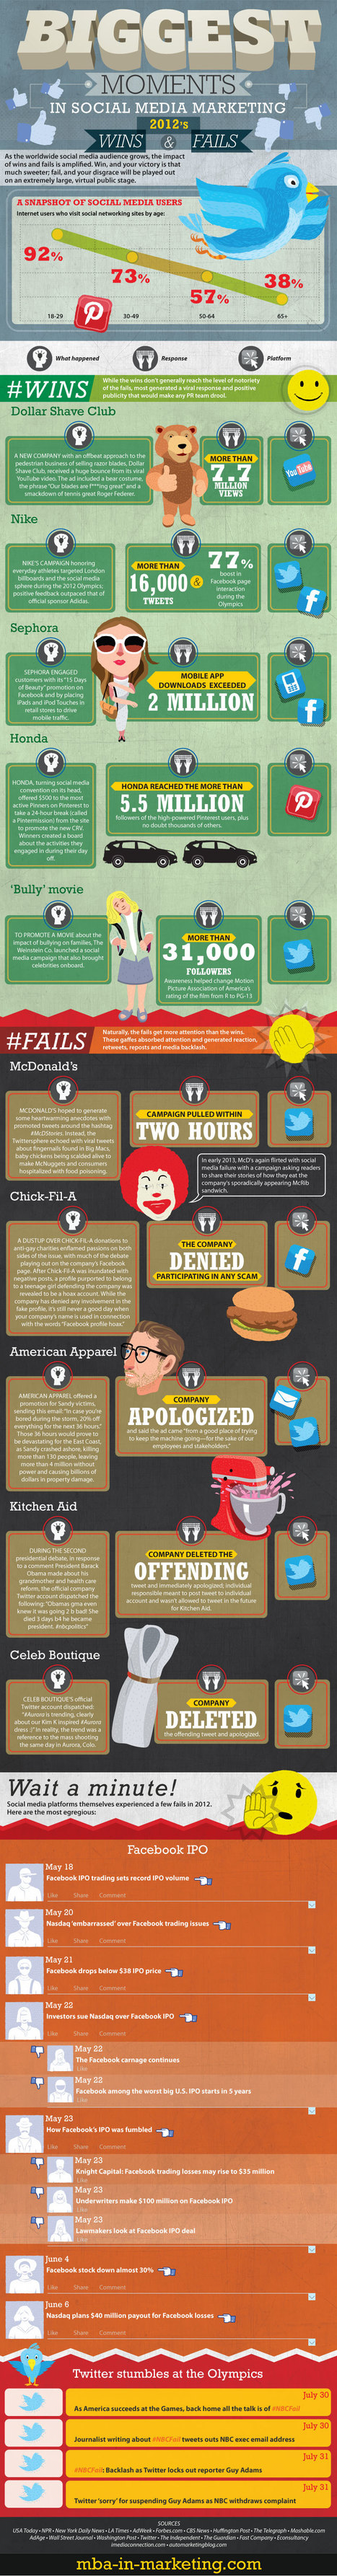 Biggest Moments in Social Media Marketing [infographic] | Personal Branding and Professional networks | Scoop.it